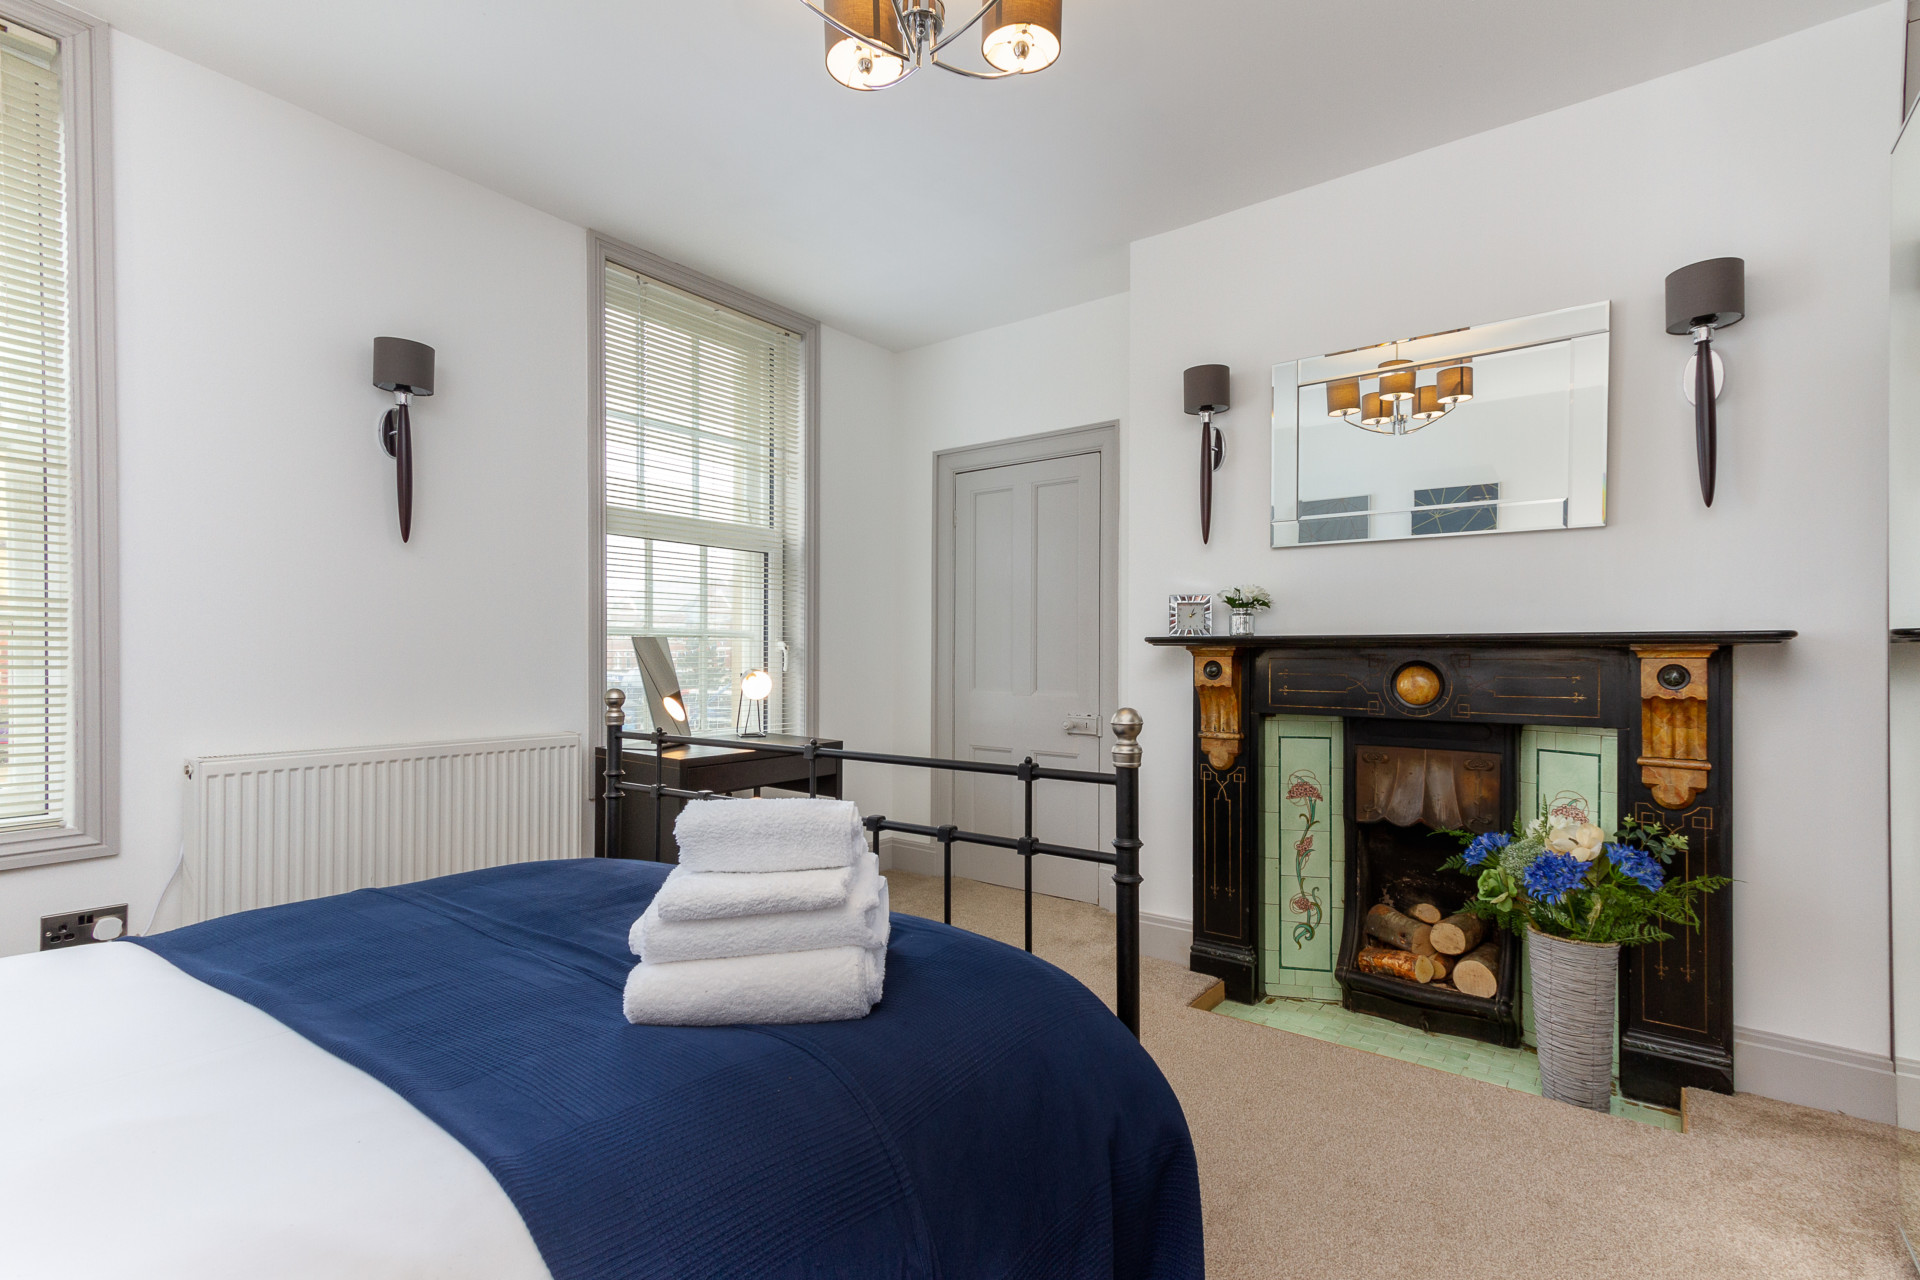 Master bedroom with original feature fireplace